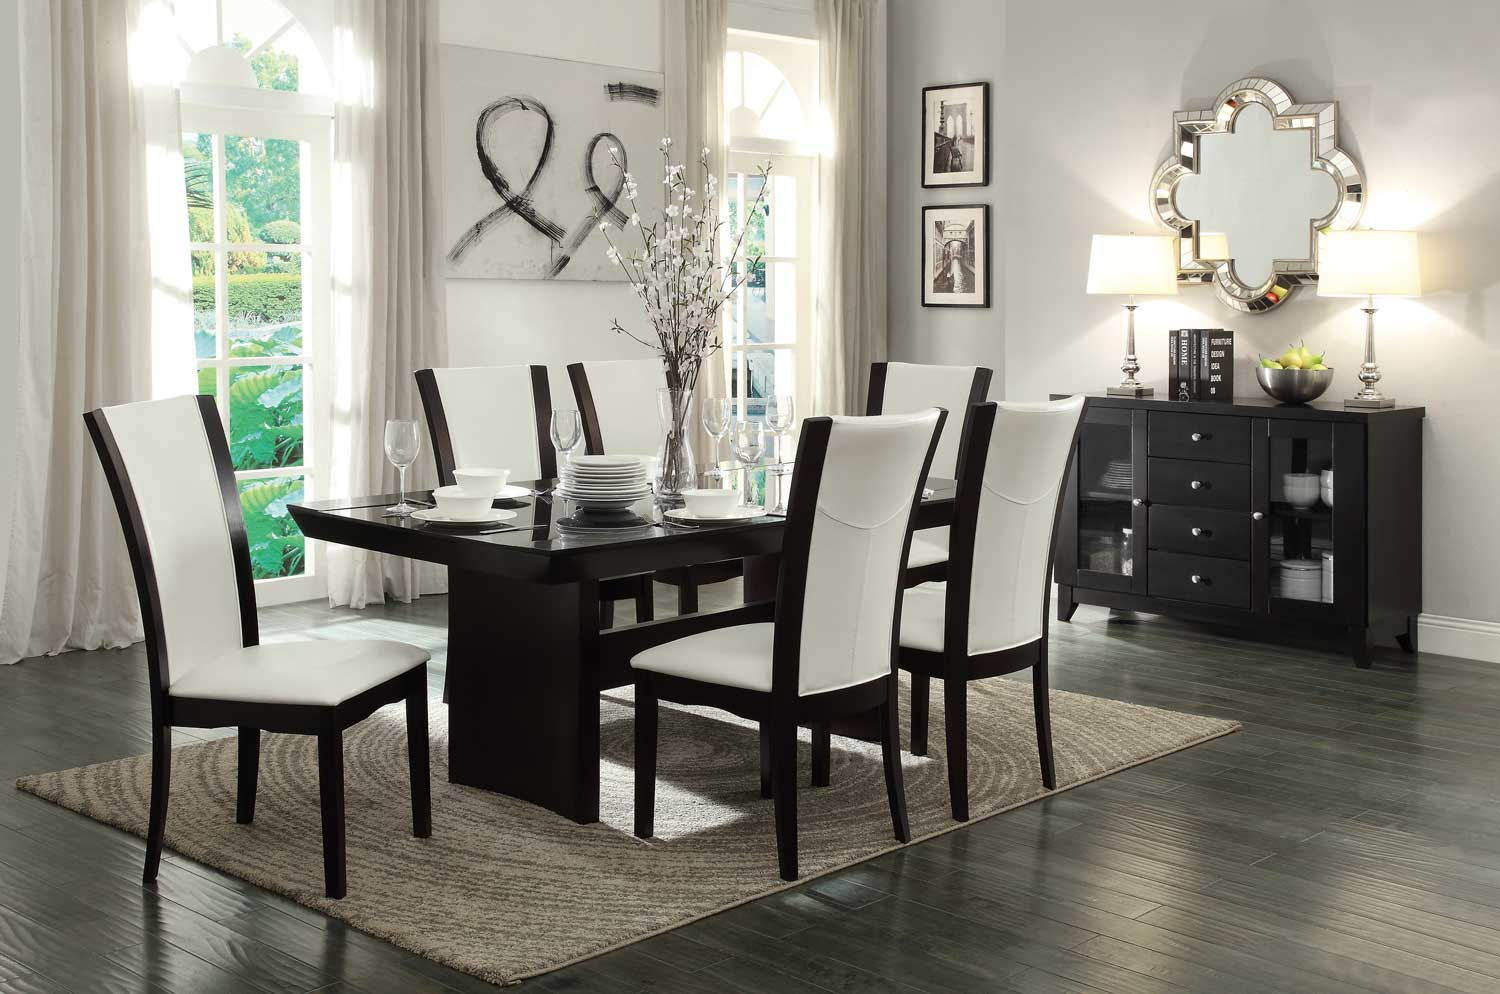 Homelegance Daisy 7pc White Glass Top Dining Table Set